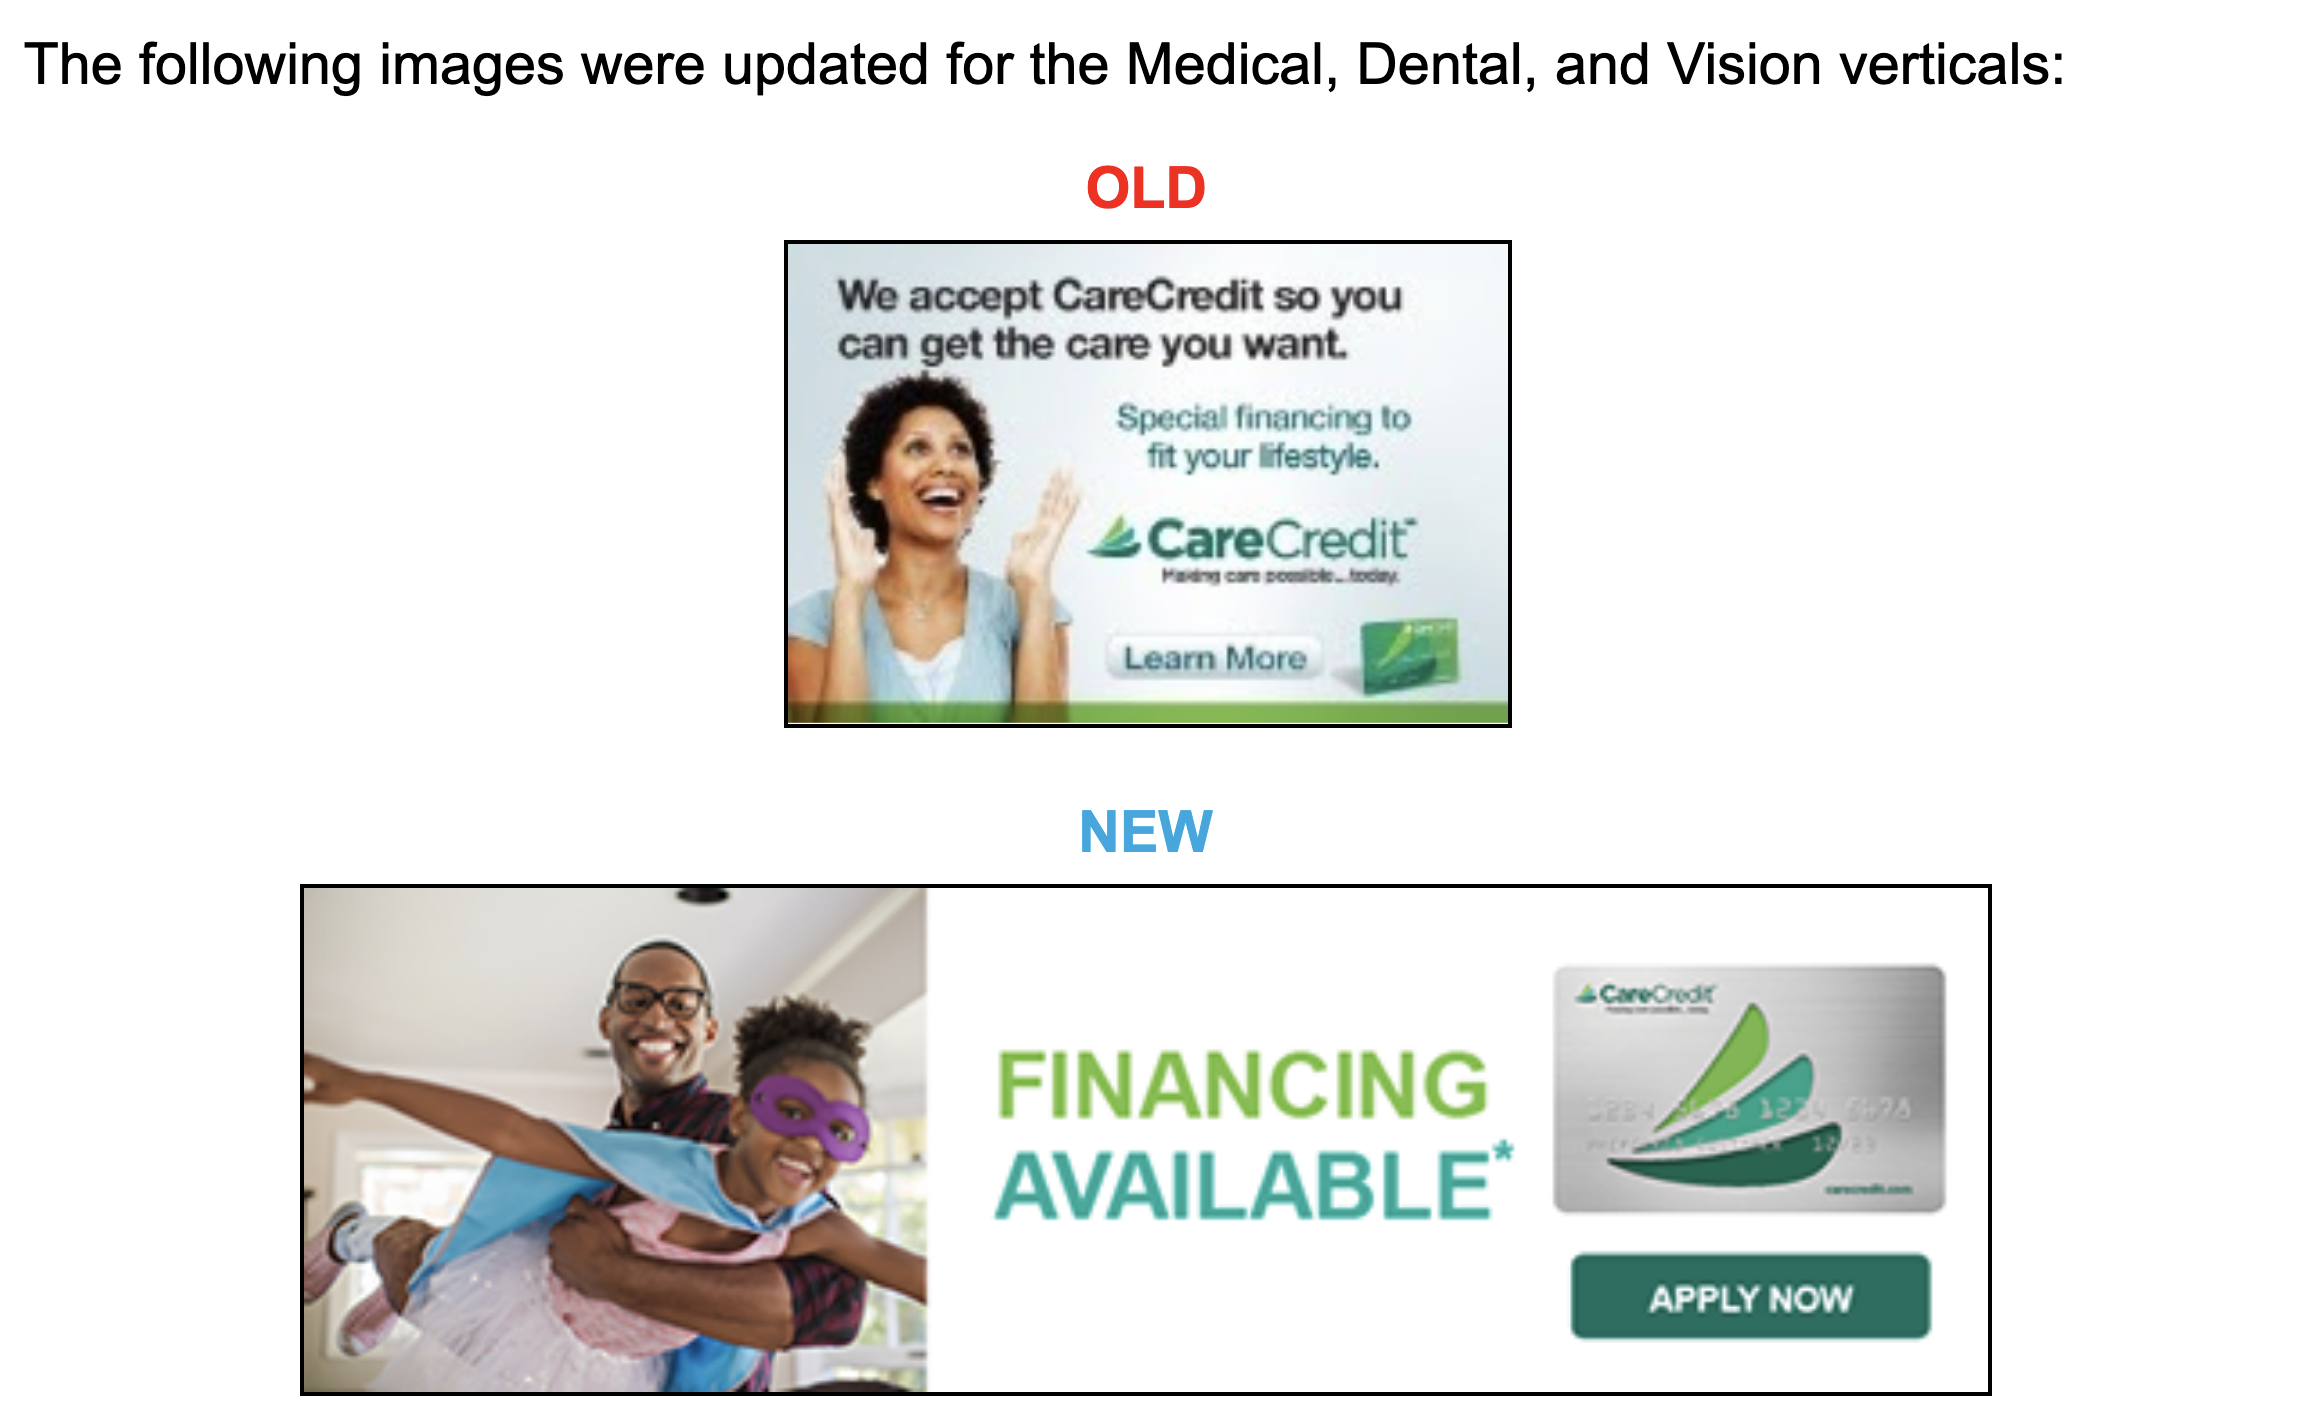 CareCredit old and new images for all verticals